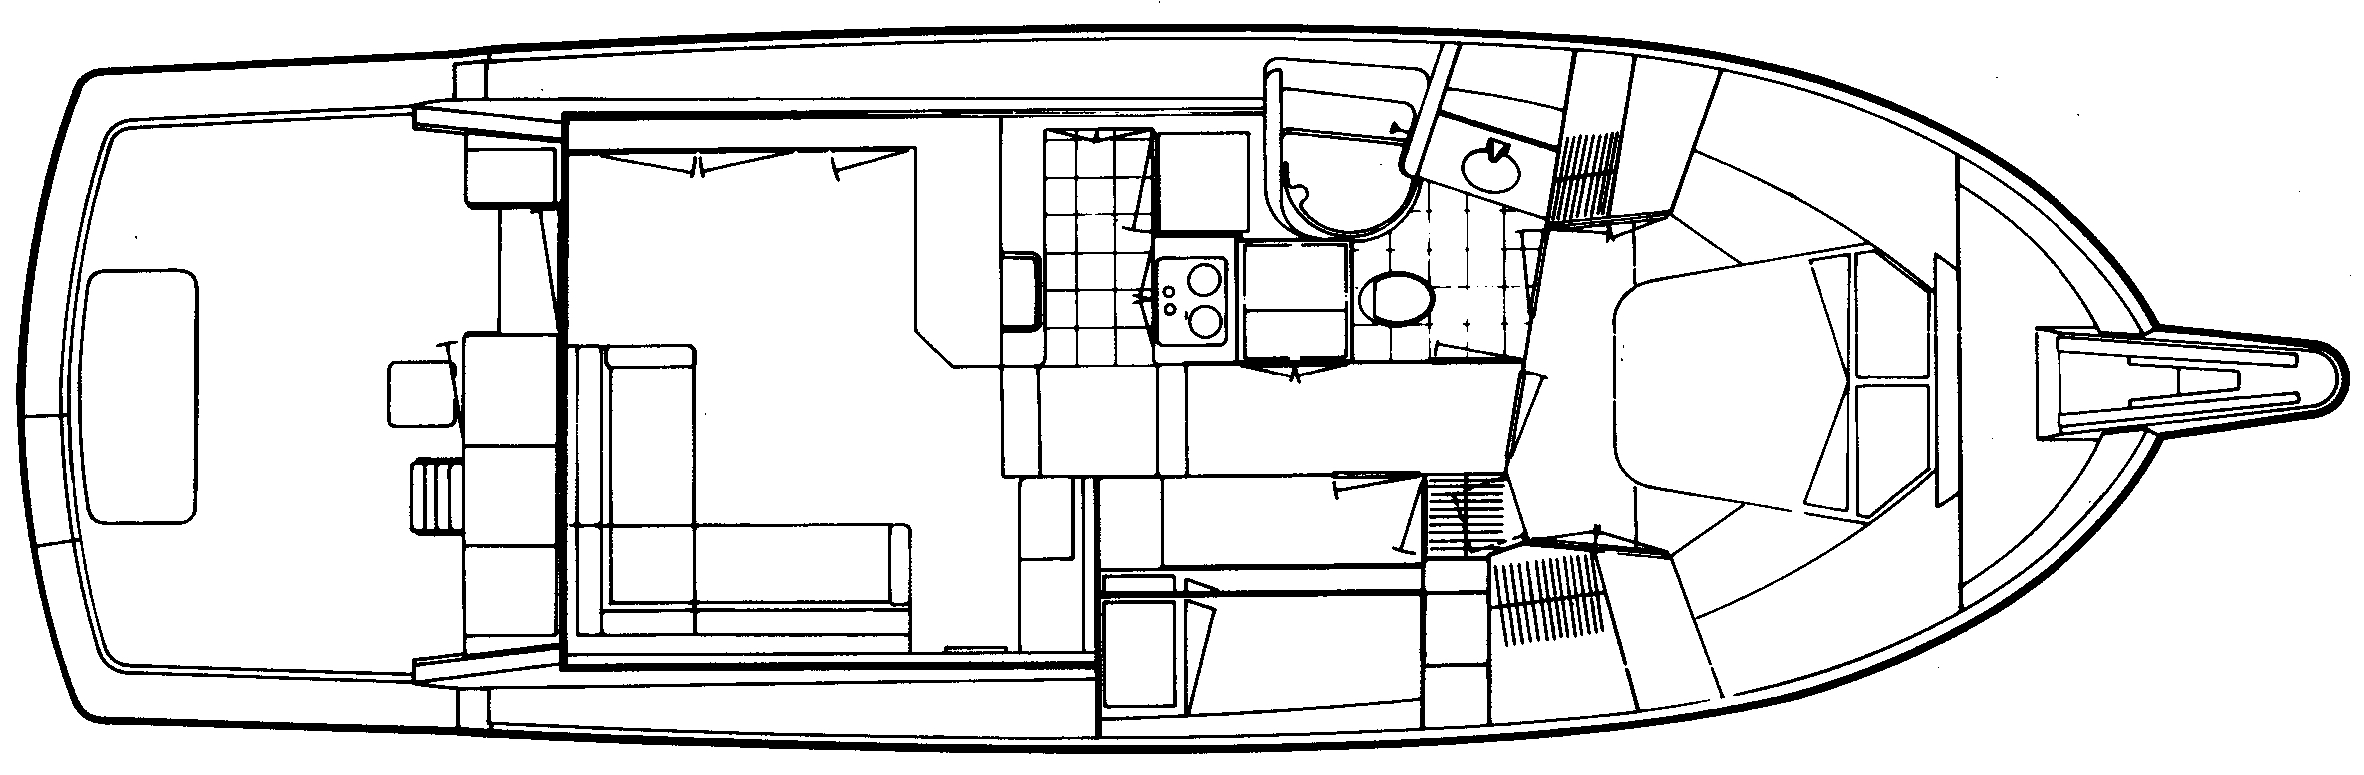 43 Convertible Floor Plan 2